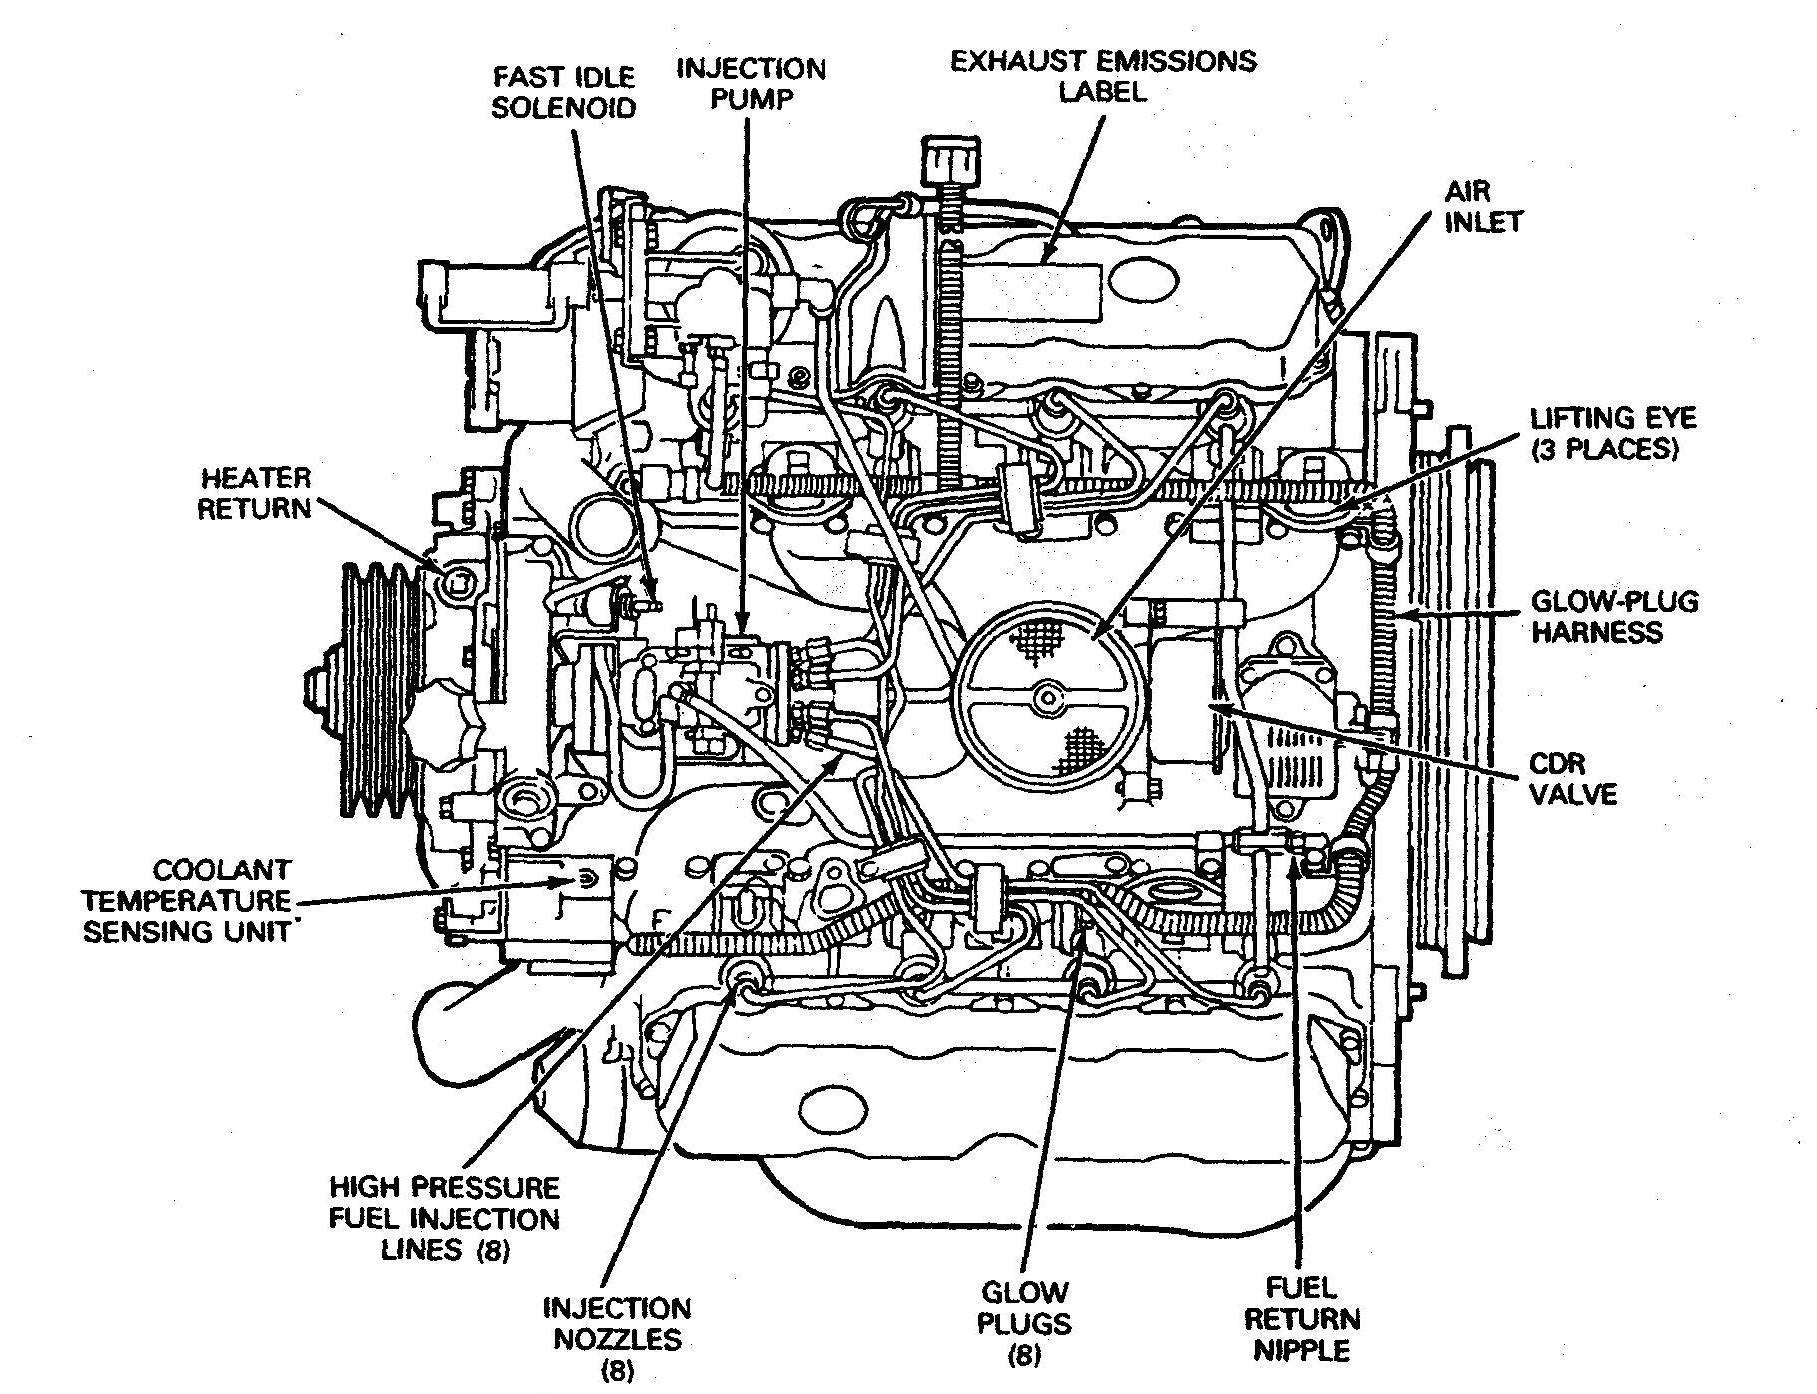 Ford 5 4 Engine Diagram 2 ford V6 3 7 Engine Diagram ford Wiring Diagrams Instructions Of Ford 5 4 Engine Diagram 2